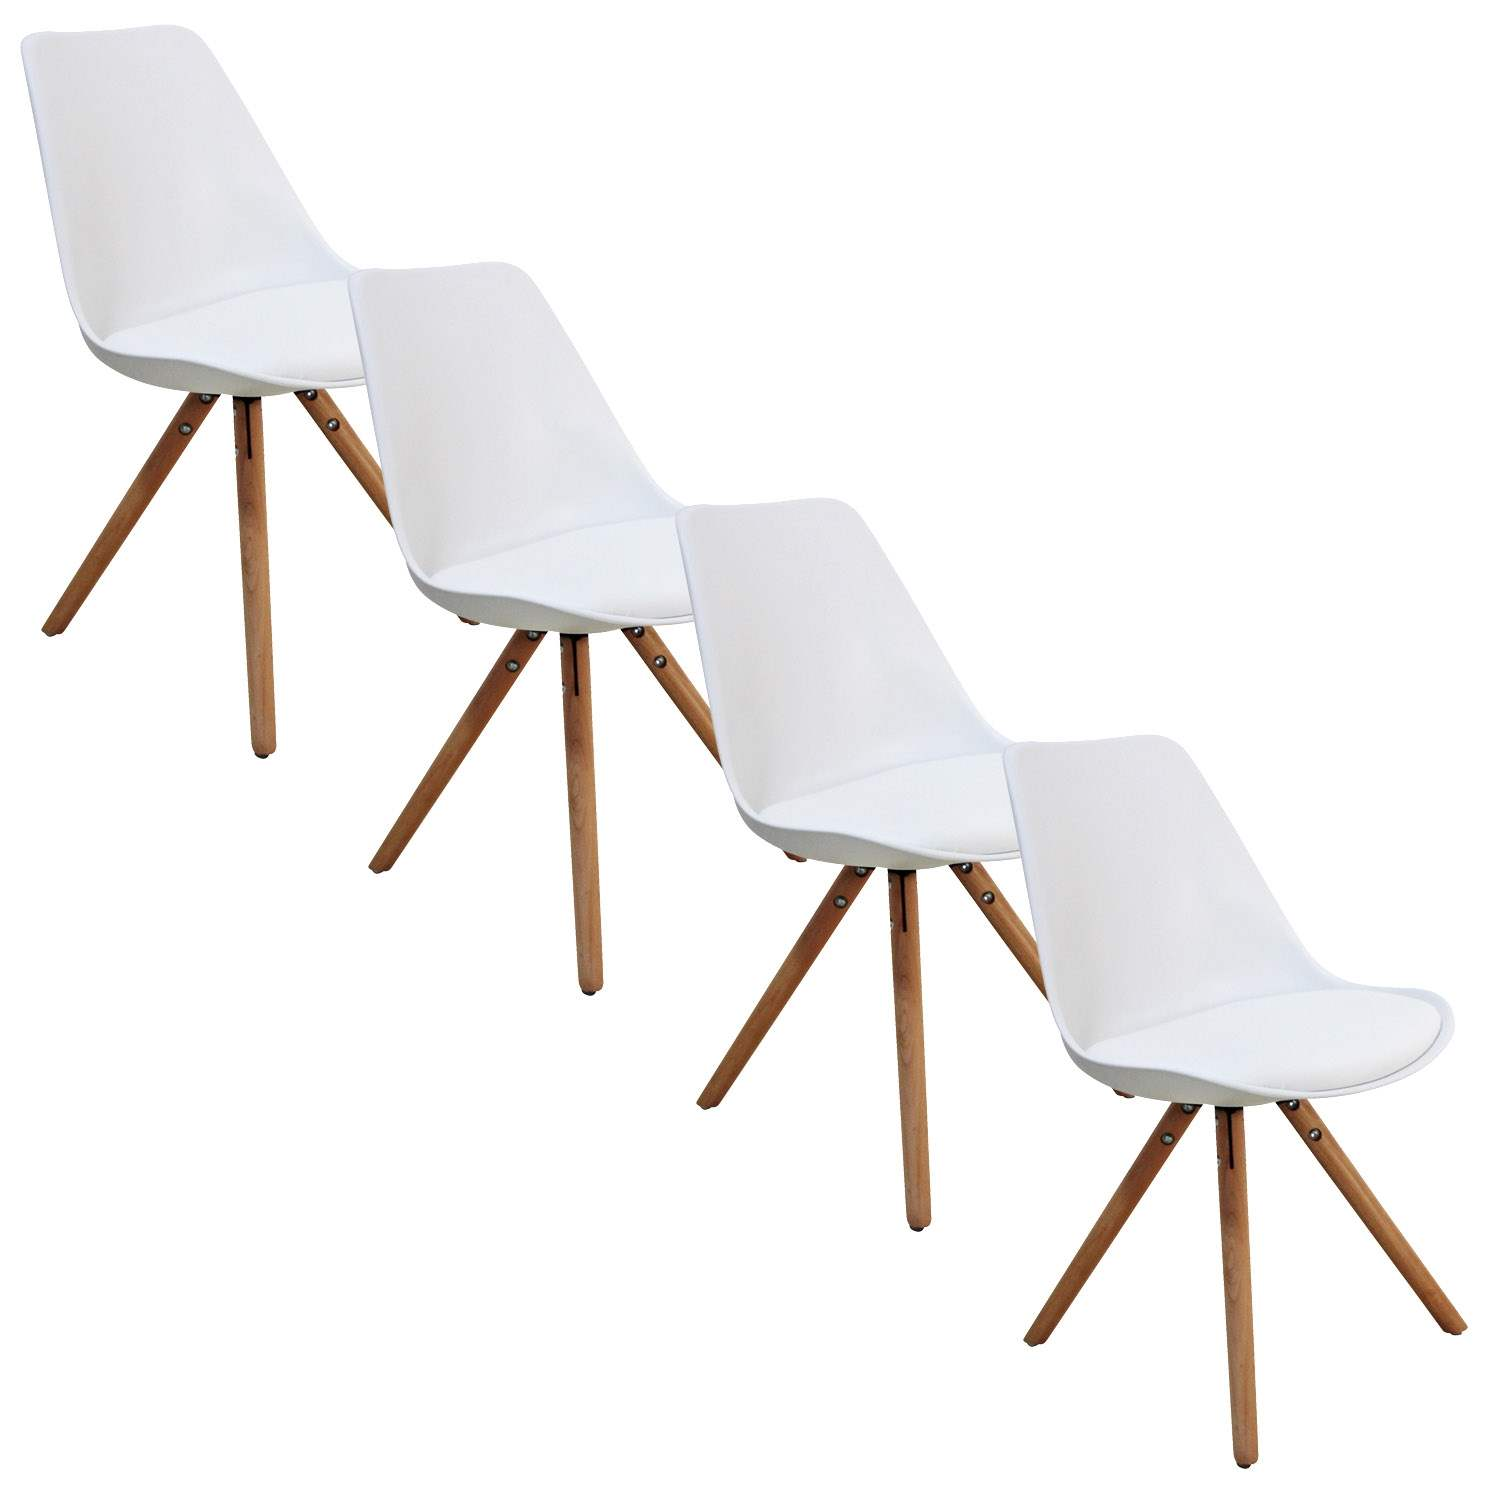 Deco in paris lot de 4 chaises design blanc velta velta for Lot 4 chaises